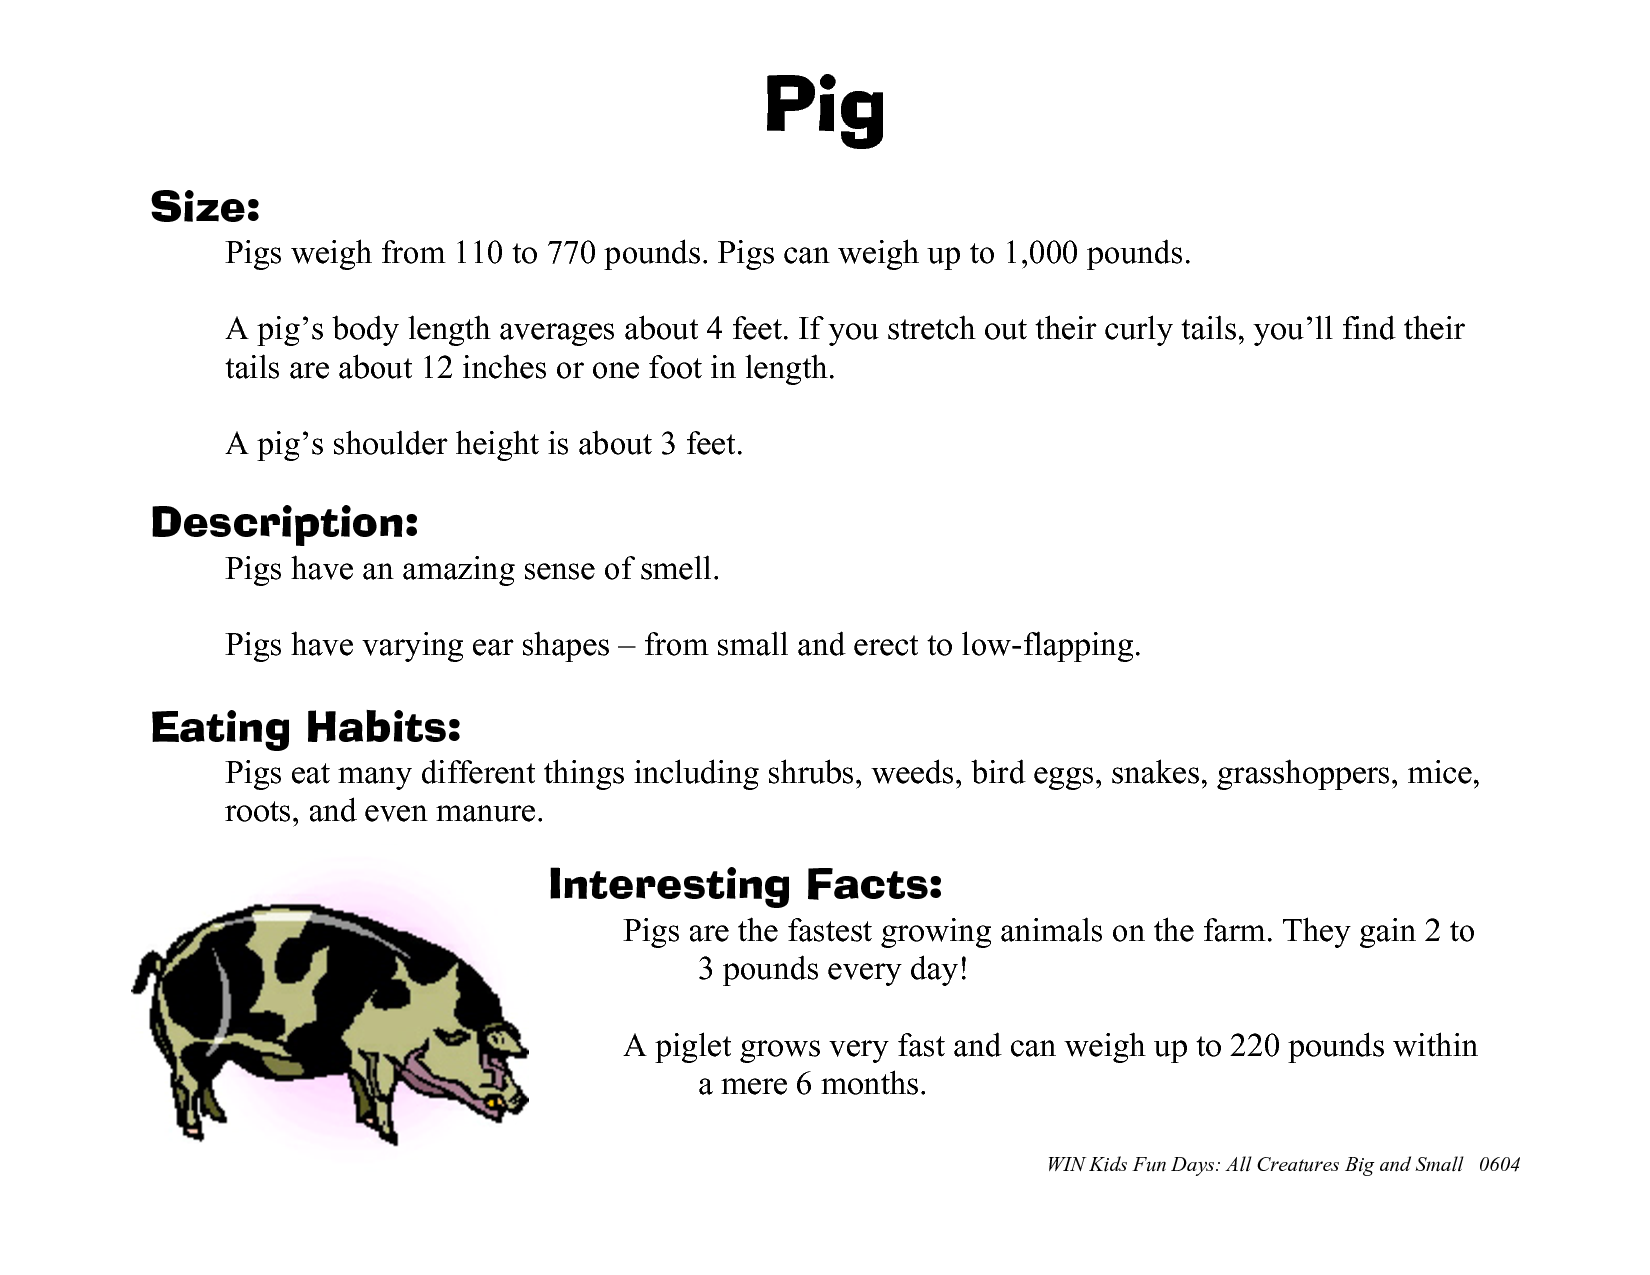 Funny Pig Facts